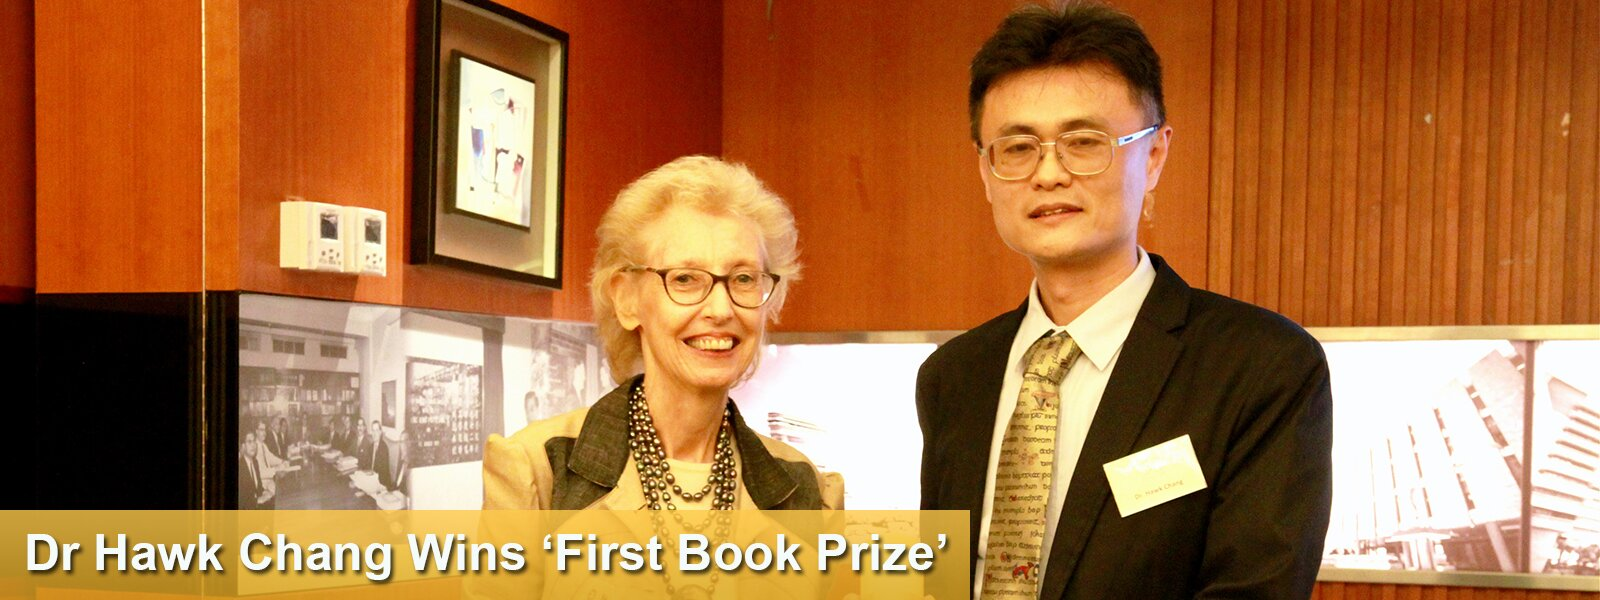 Dr Hawk Chang Wins 'First Book Prize'